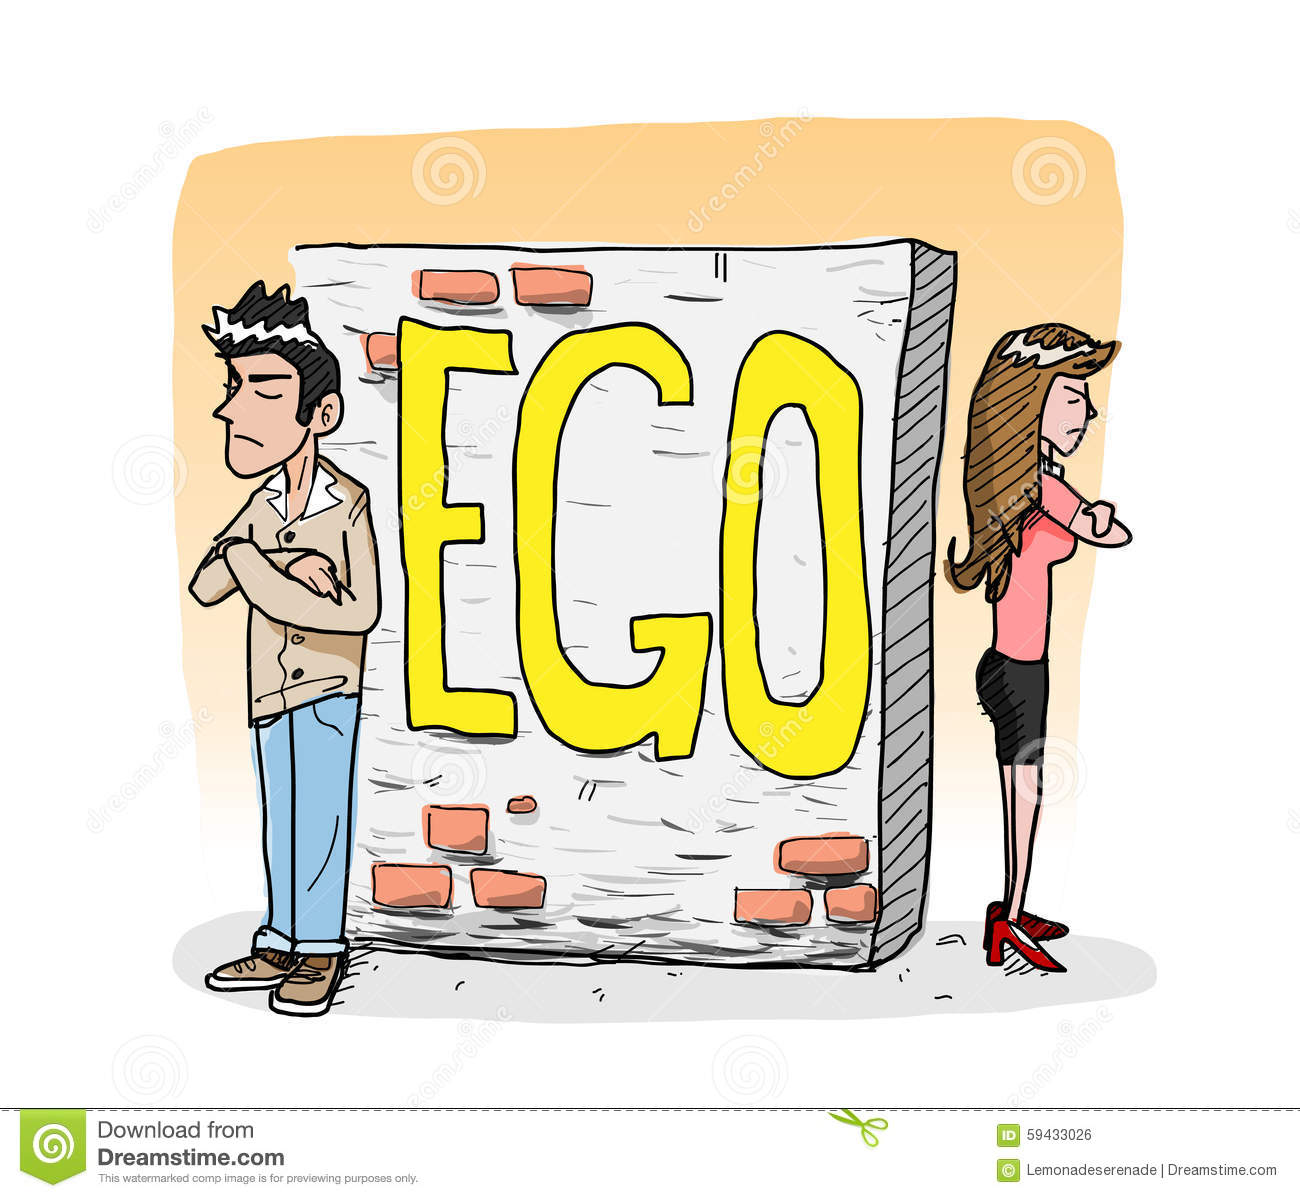 how to become less egocentric